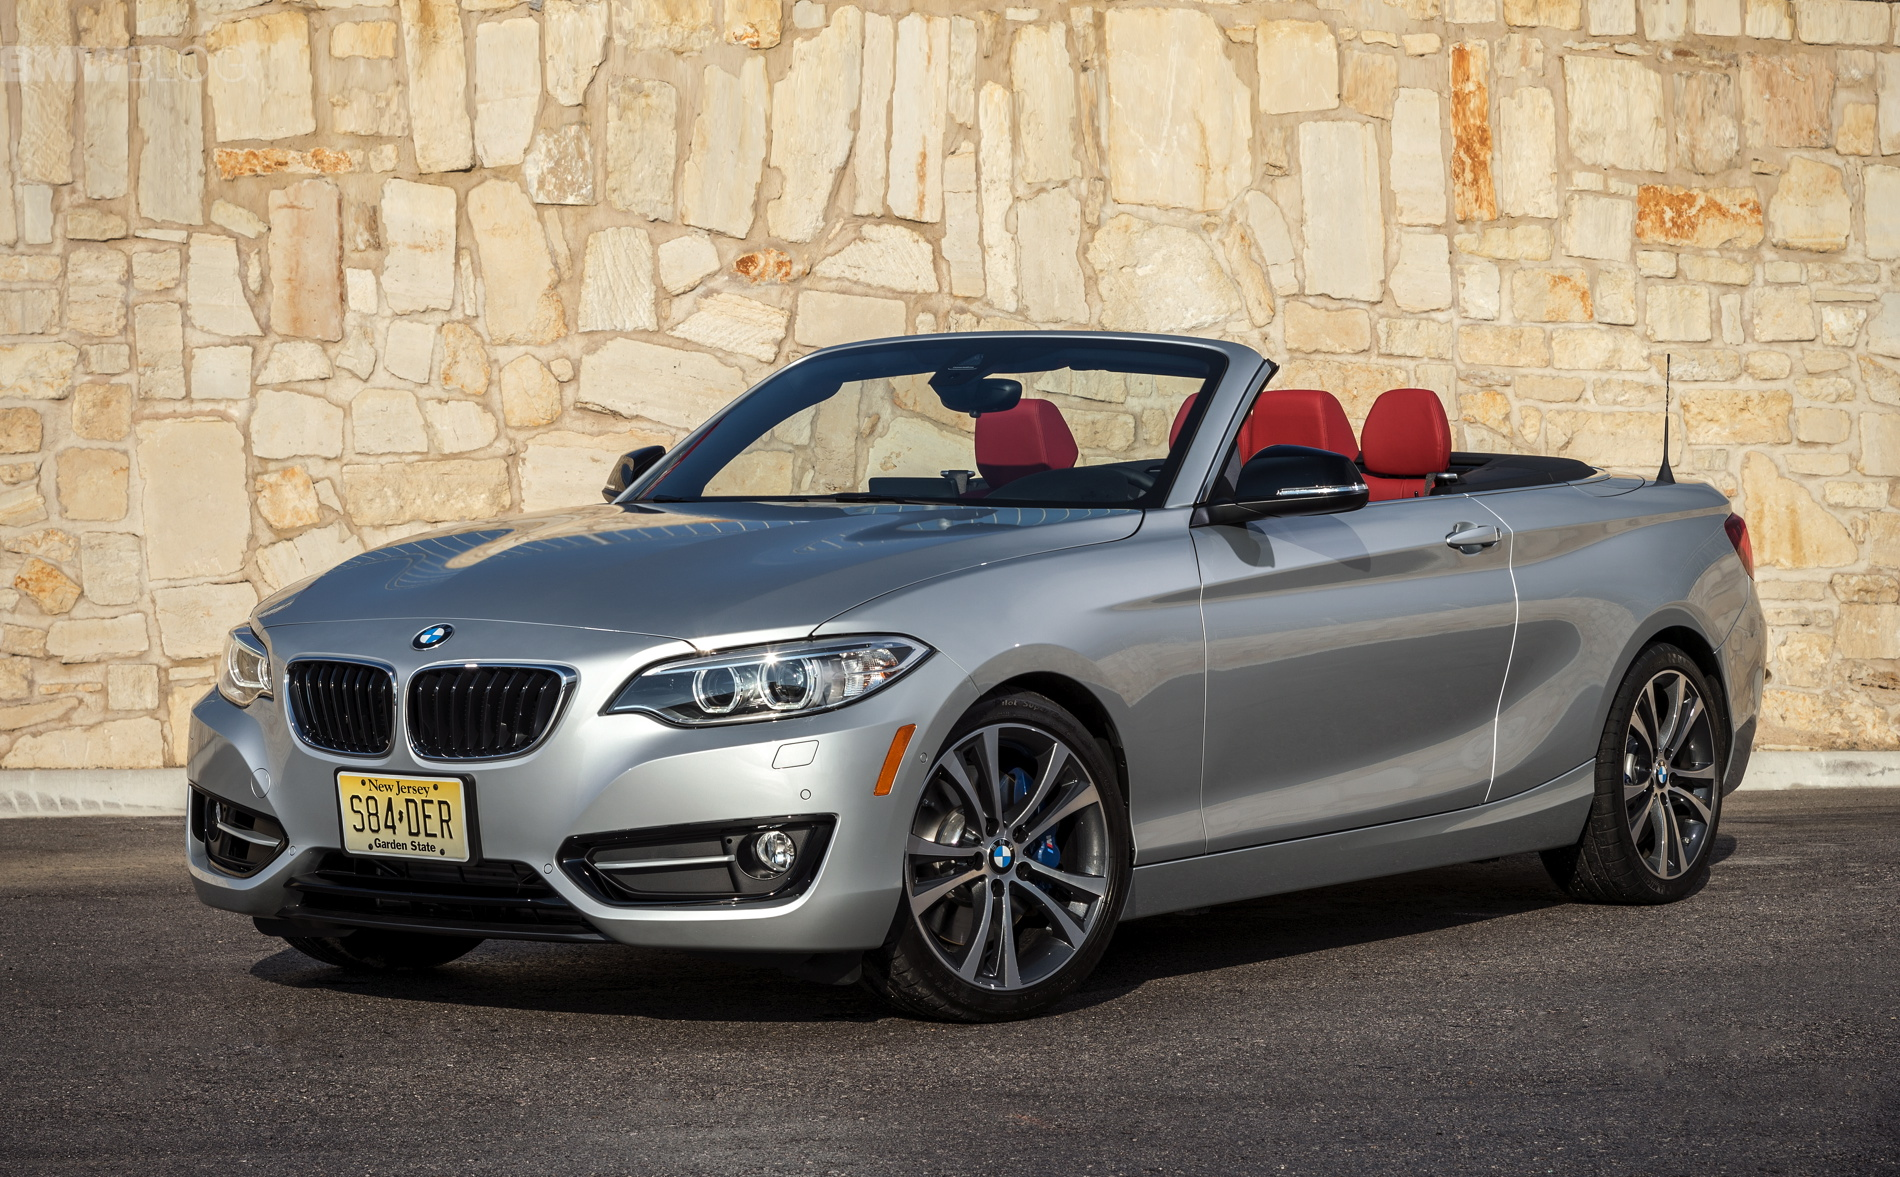 2017 Bmw 2 Series Convertible Images 90 750x465